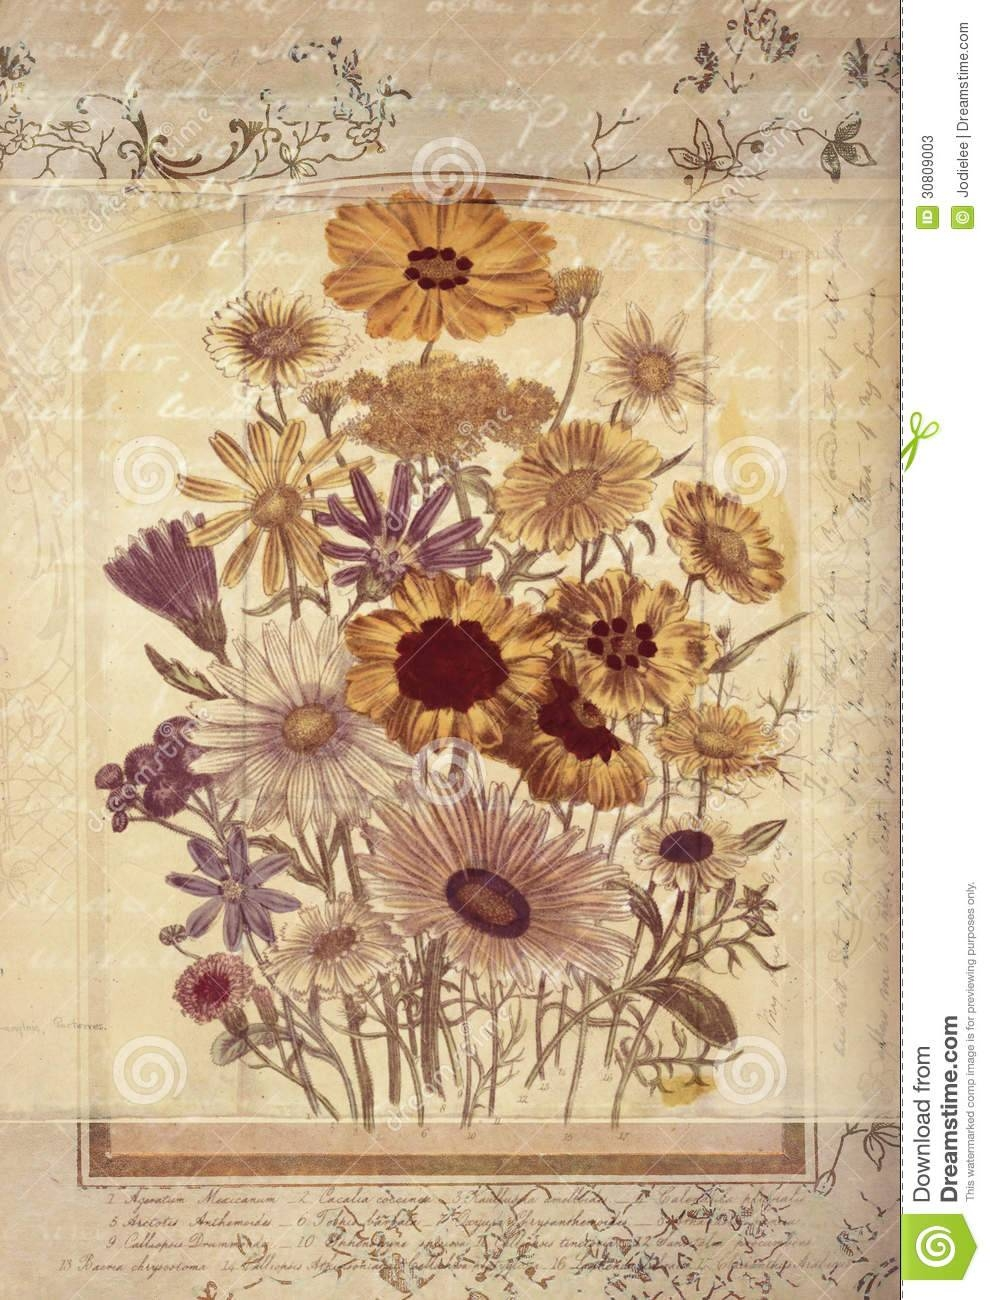 Flowers Botanical Vintage Style Wall Art With Textured Background Throughout Most Current Vintage Style Wall Art (View 8 of 20)